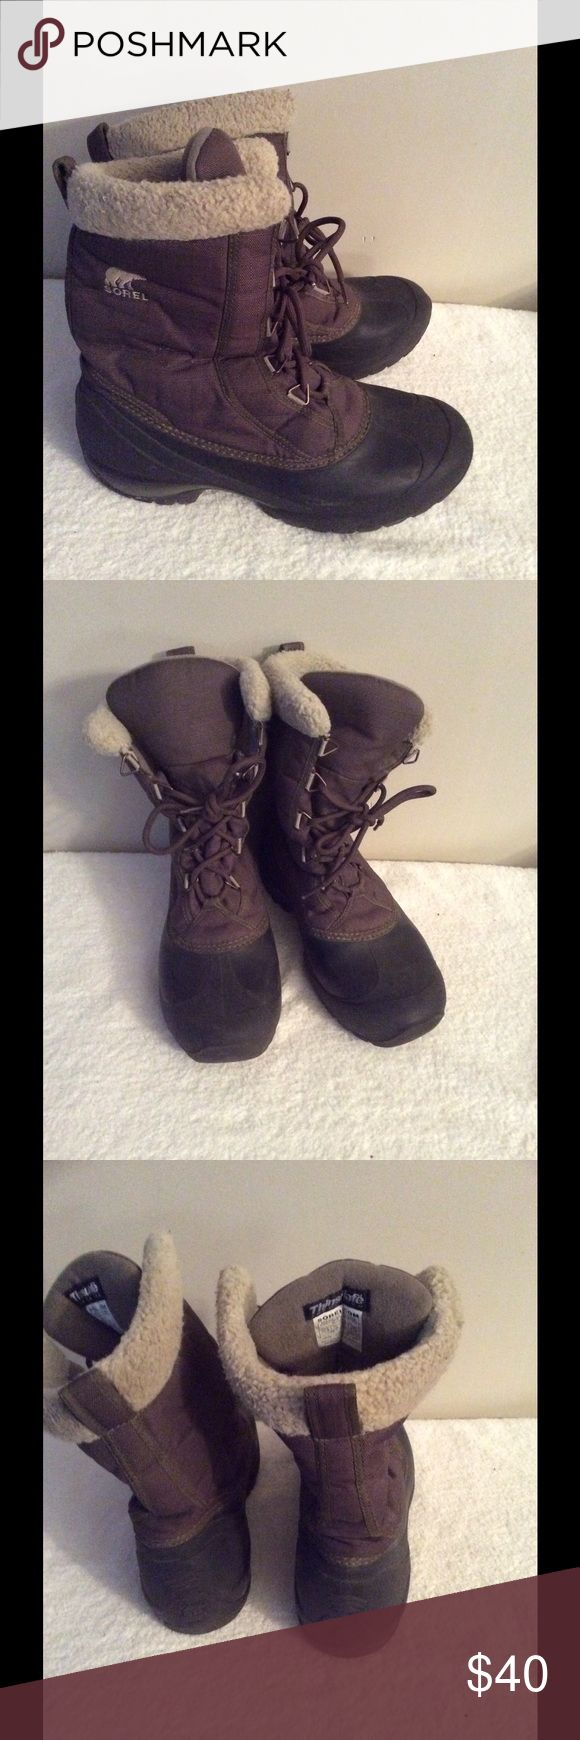 Sorel boots Preloved can use a mild cleaning otherwise good condition waterproof Sorel Shoes Winter & Rain Boots